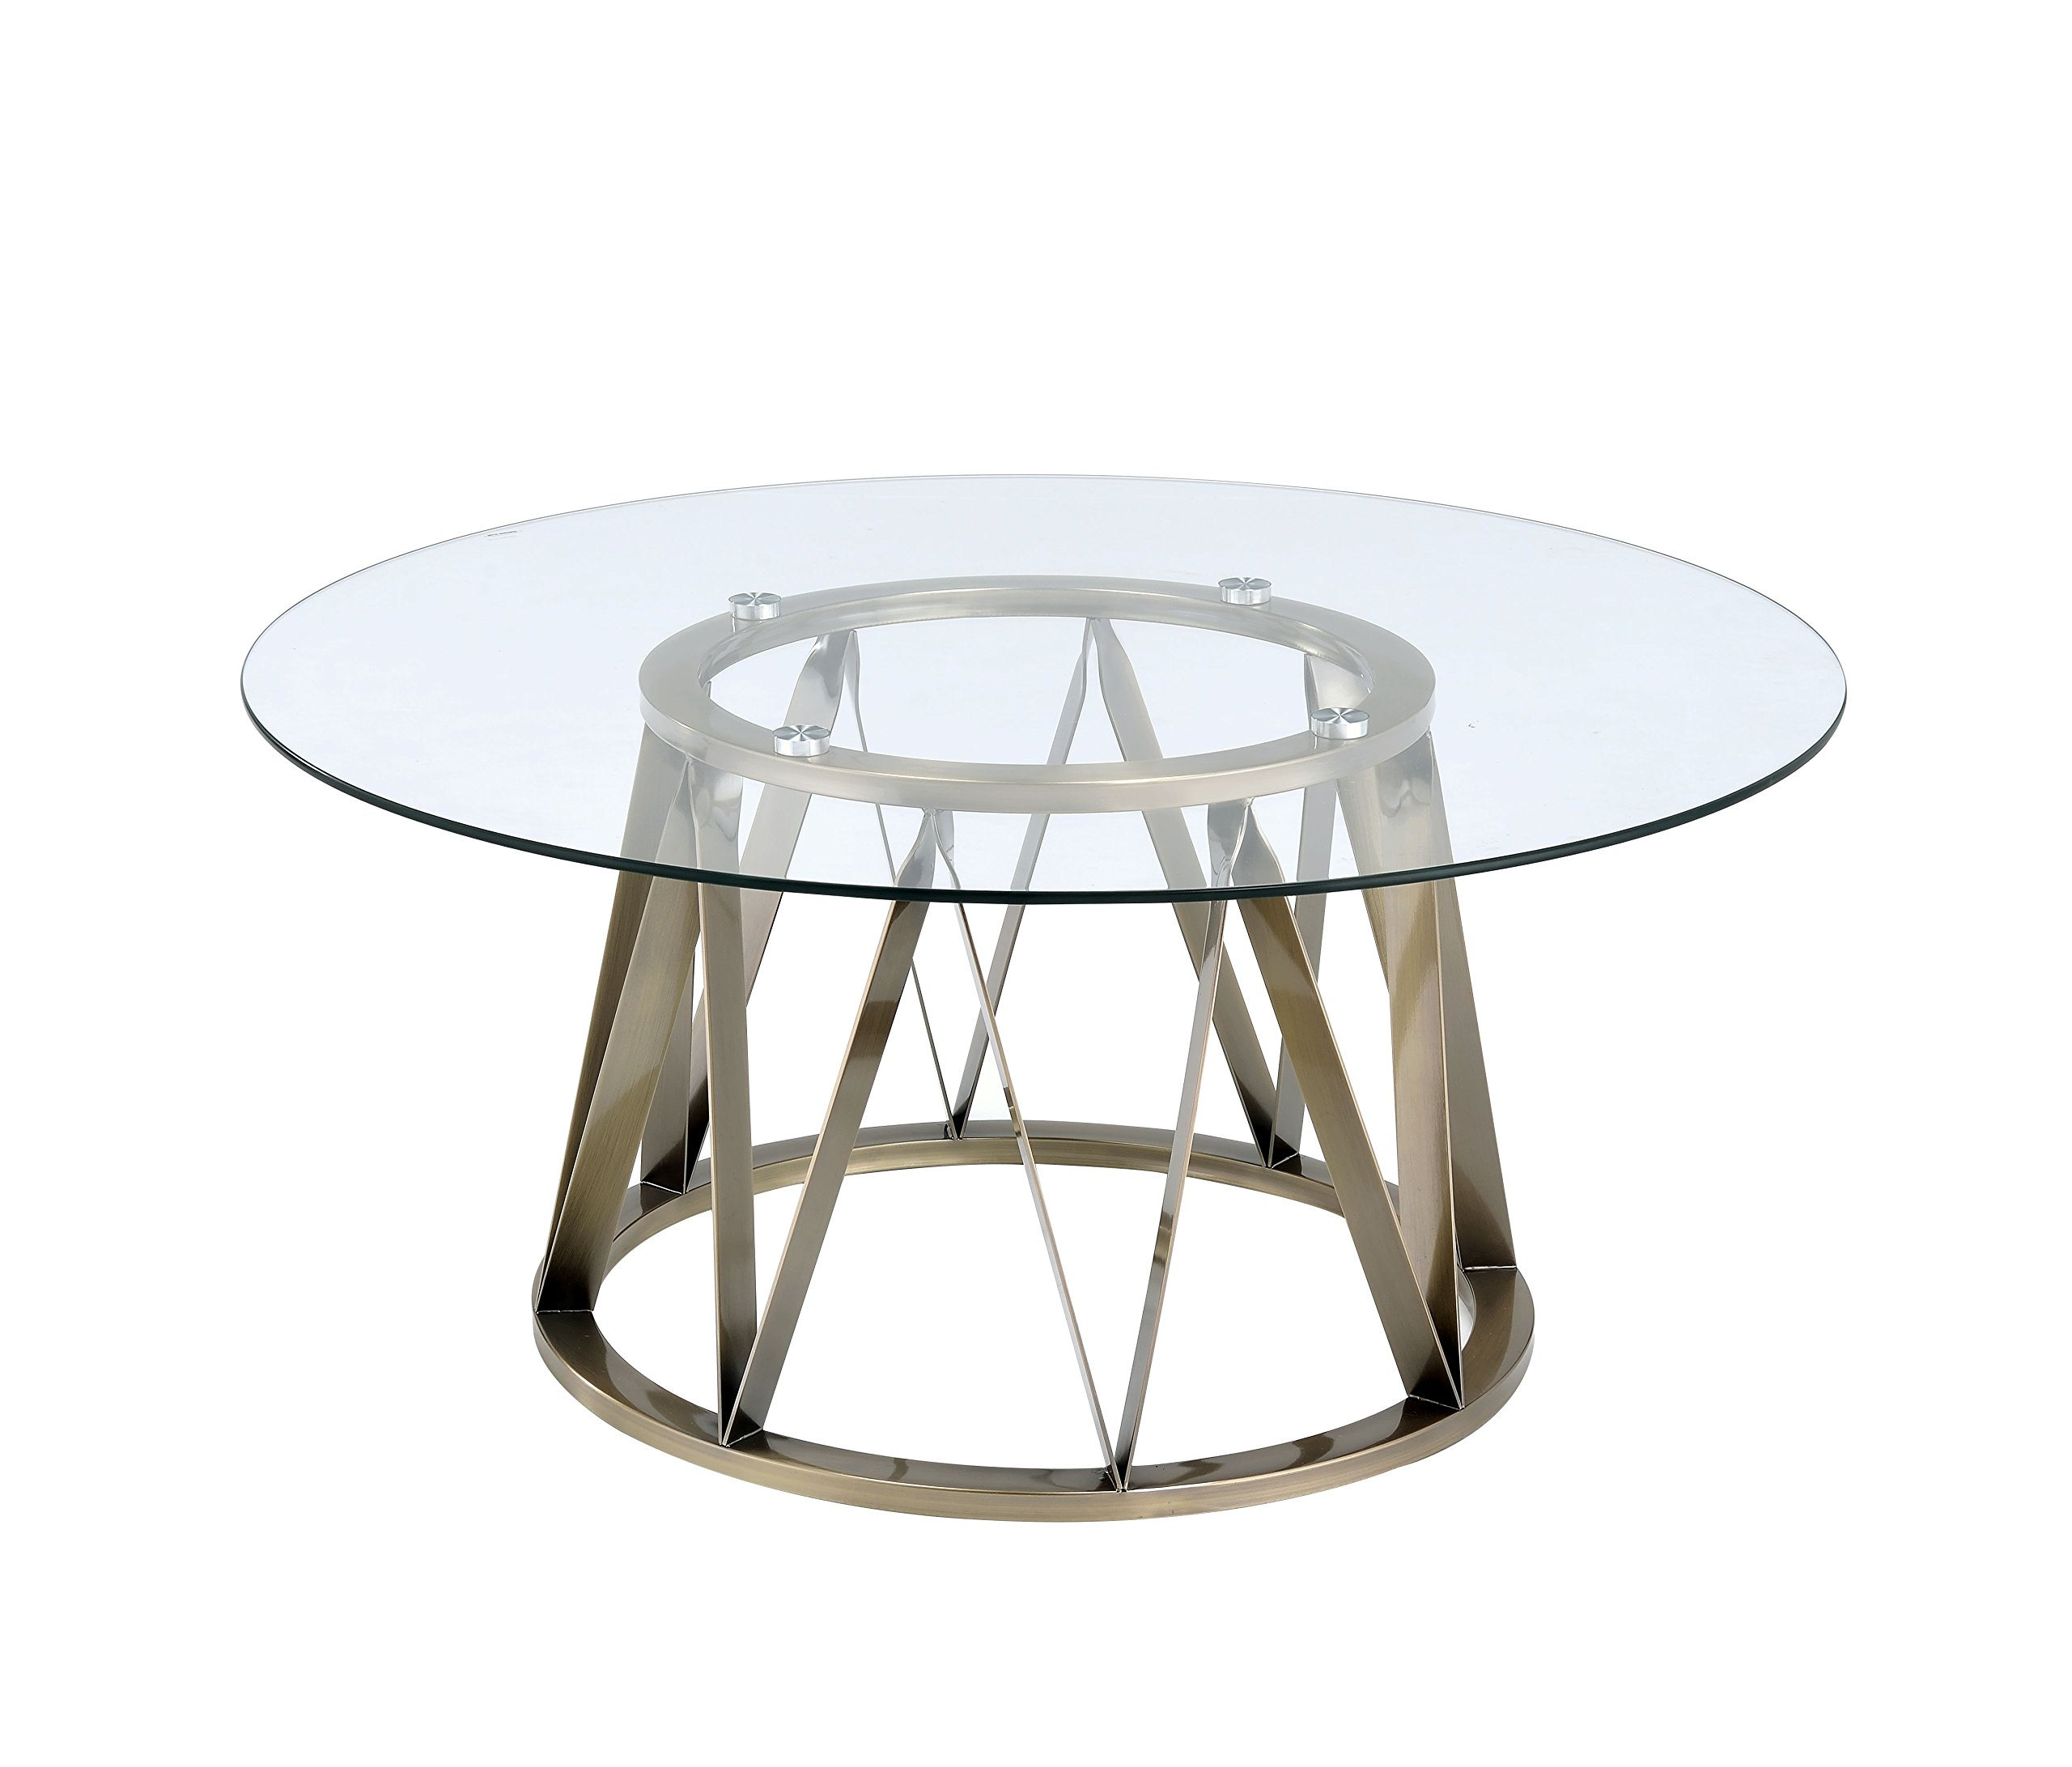 ACME Perjan Antique Brass Coffee Table with Glass Top - Round Coffee table Clear Glass Top 8 mm clear tempered Glass - living-room-furniture, living-room, coffee-tables - 71H5FpU4JZL -